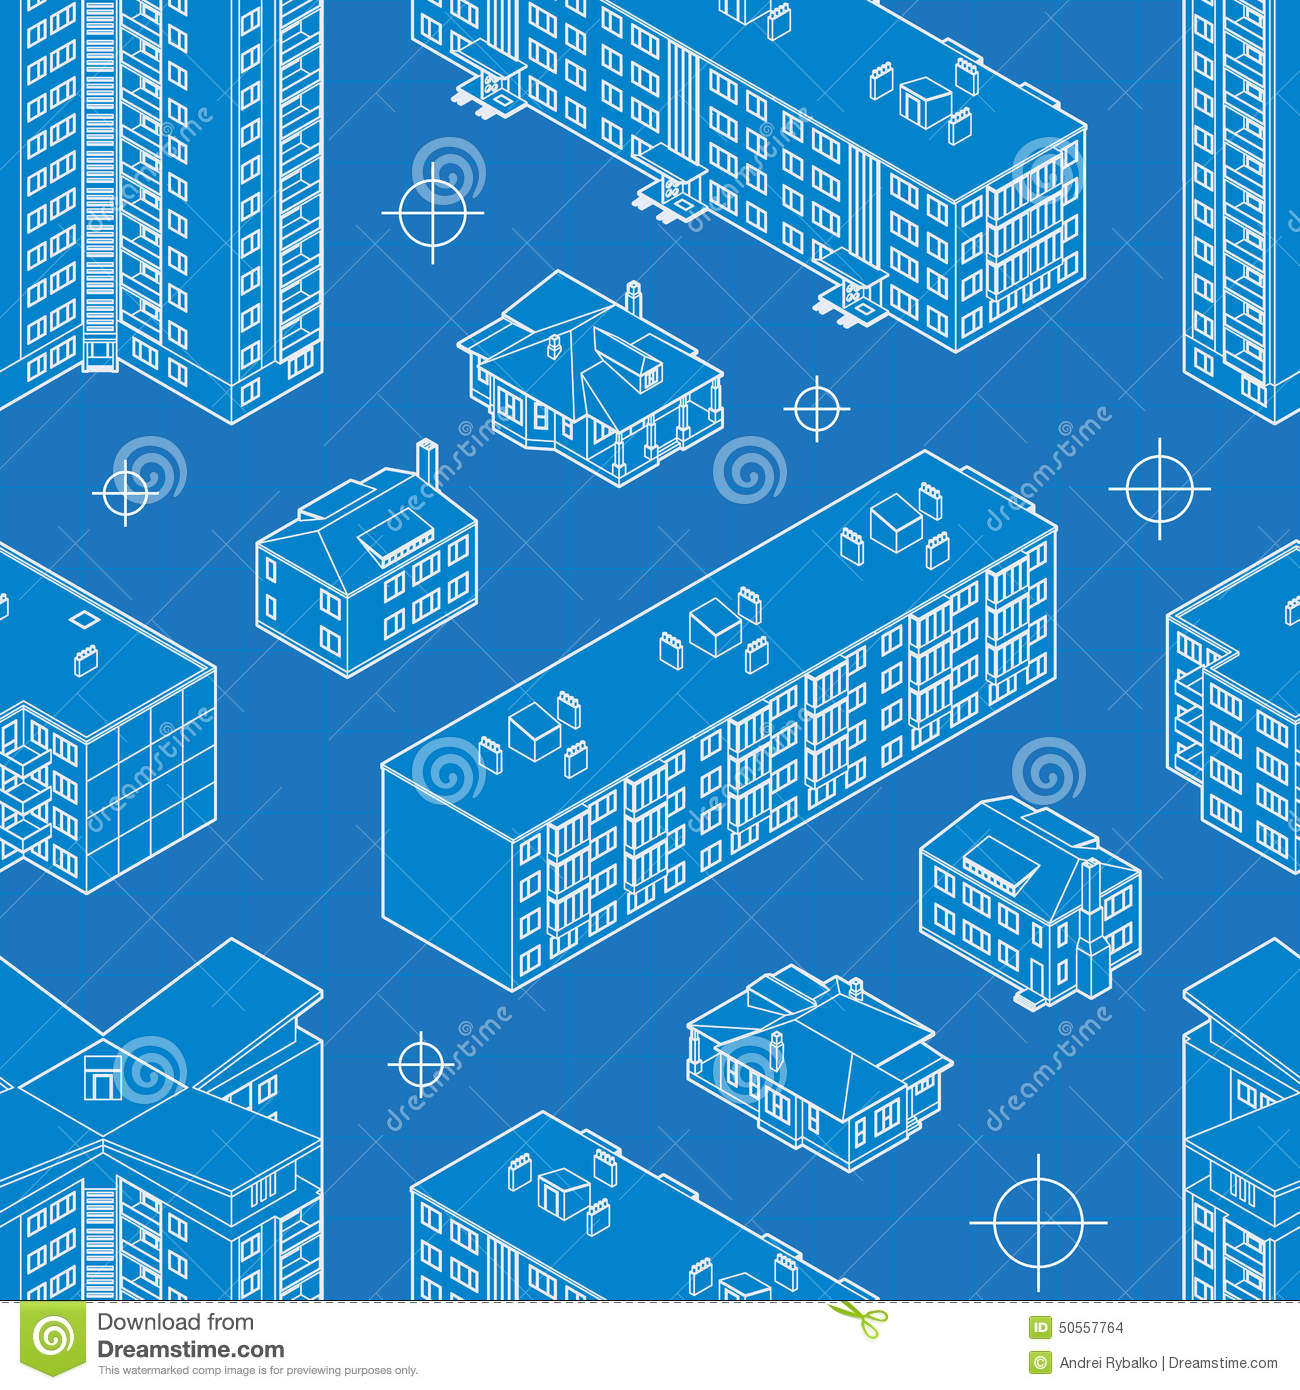 Blueprint dwelling buildings seamless pattern stock vector blueprint dwelling buildings seamless pattern malvernweather Images